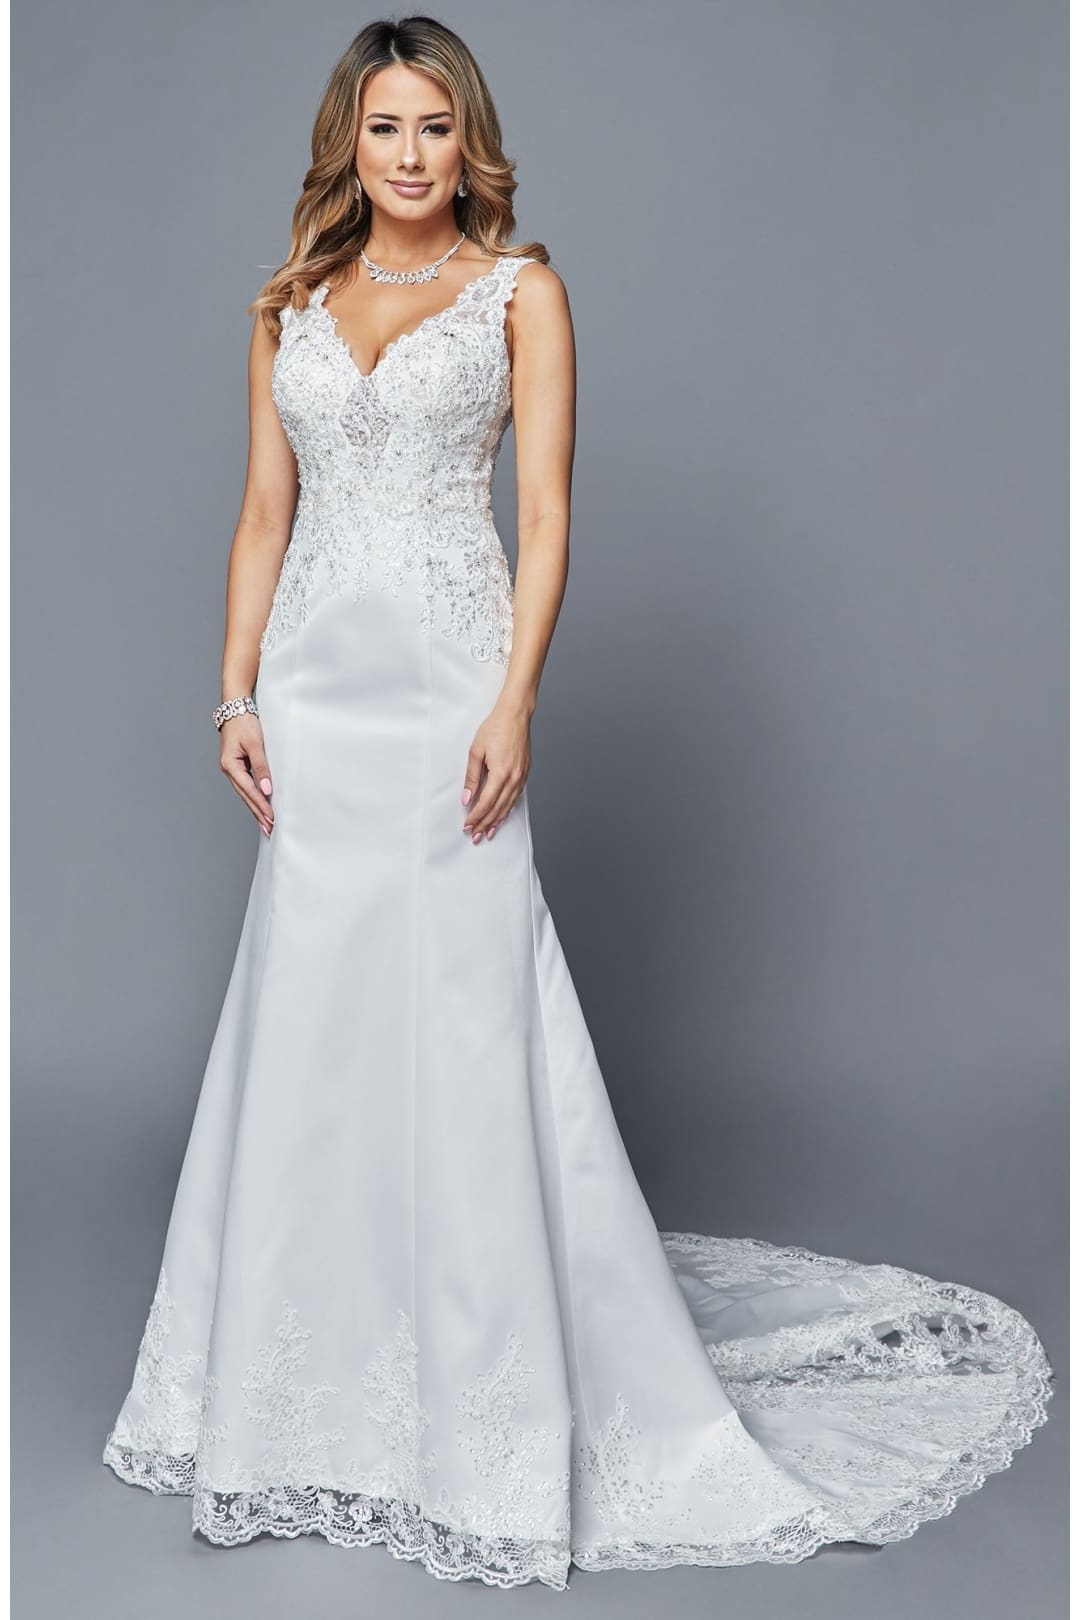 Sleeveless Wedding Formal Dress With Train - WHITE / XS